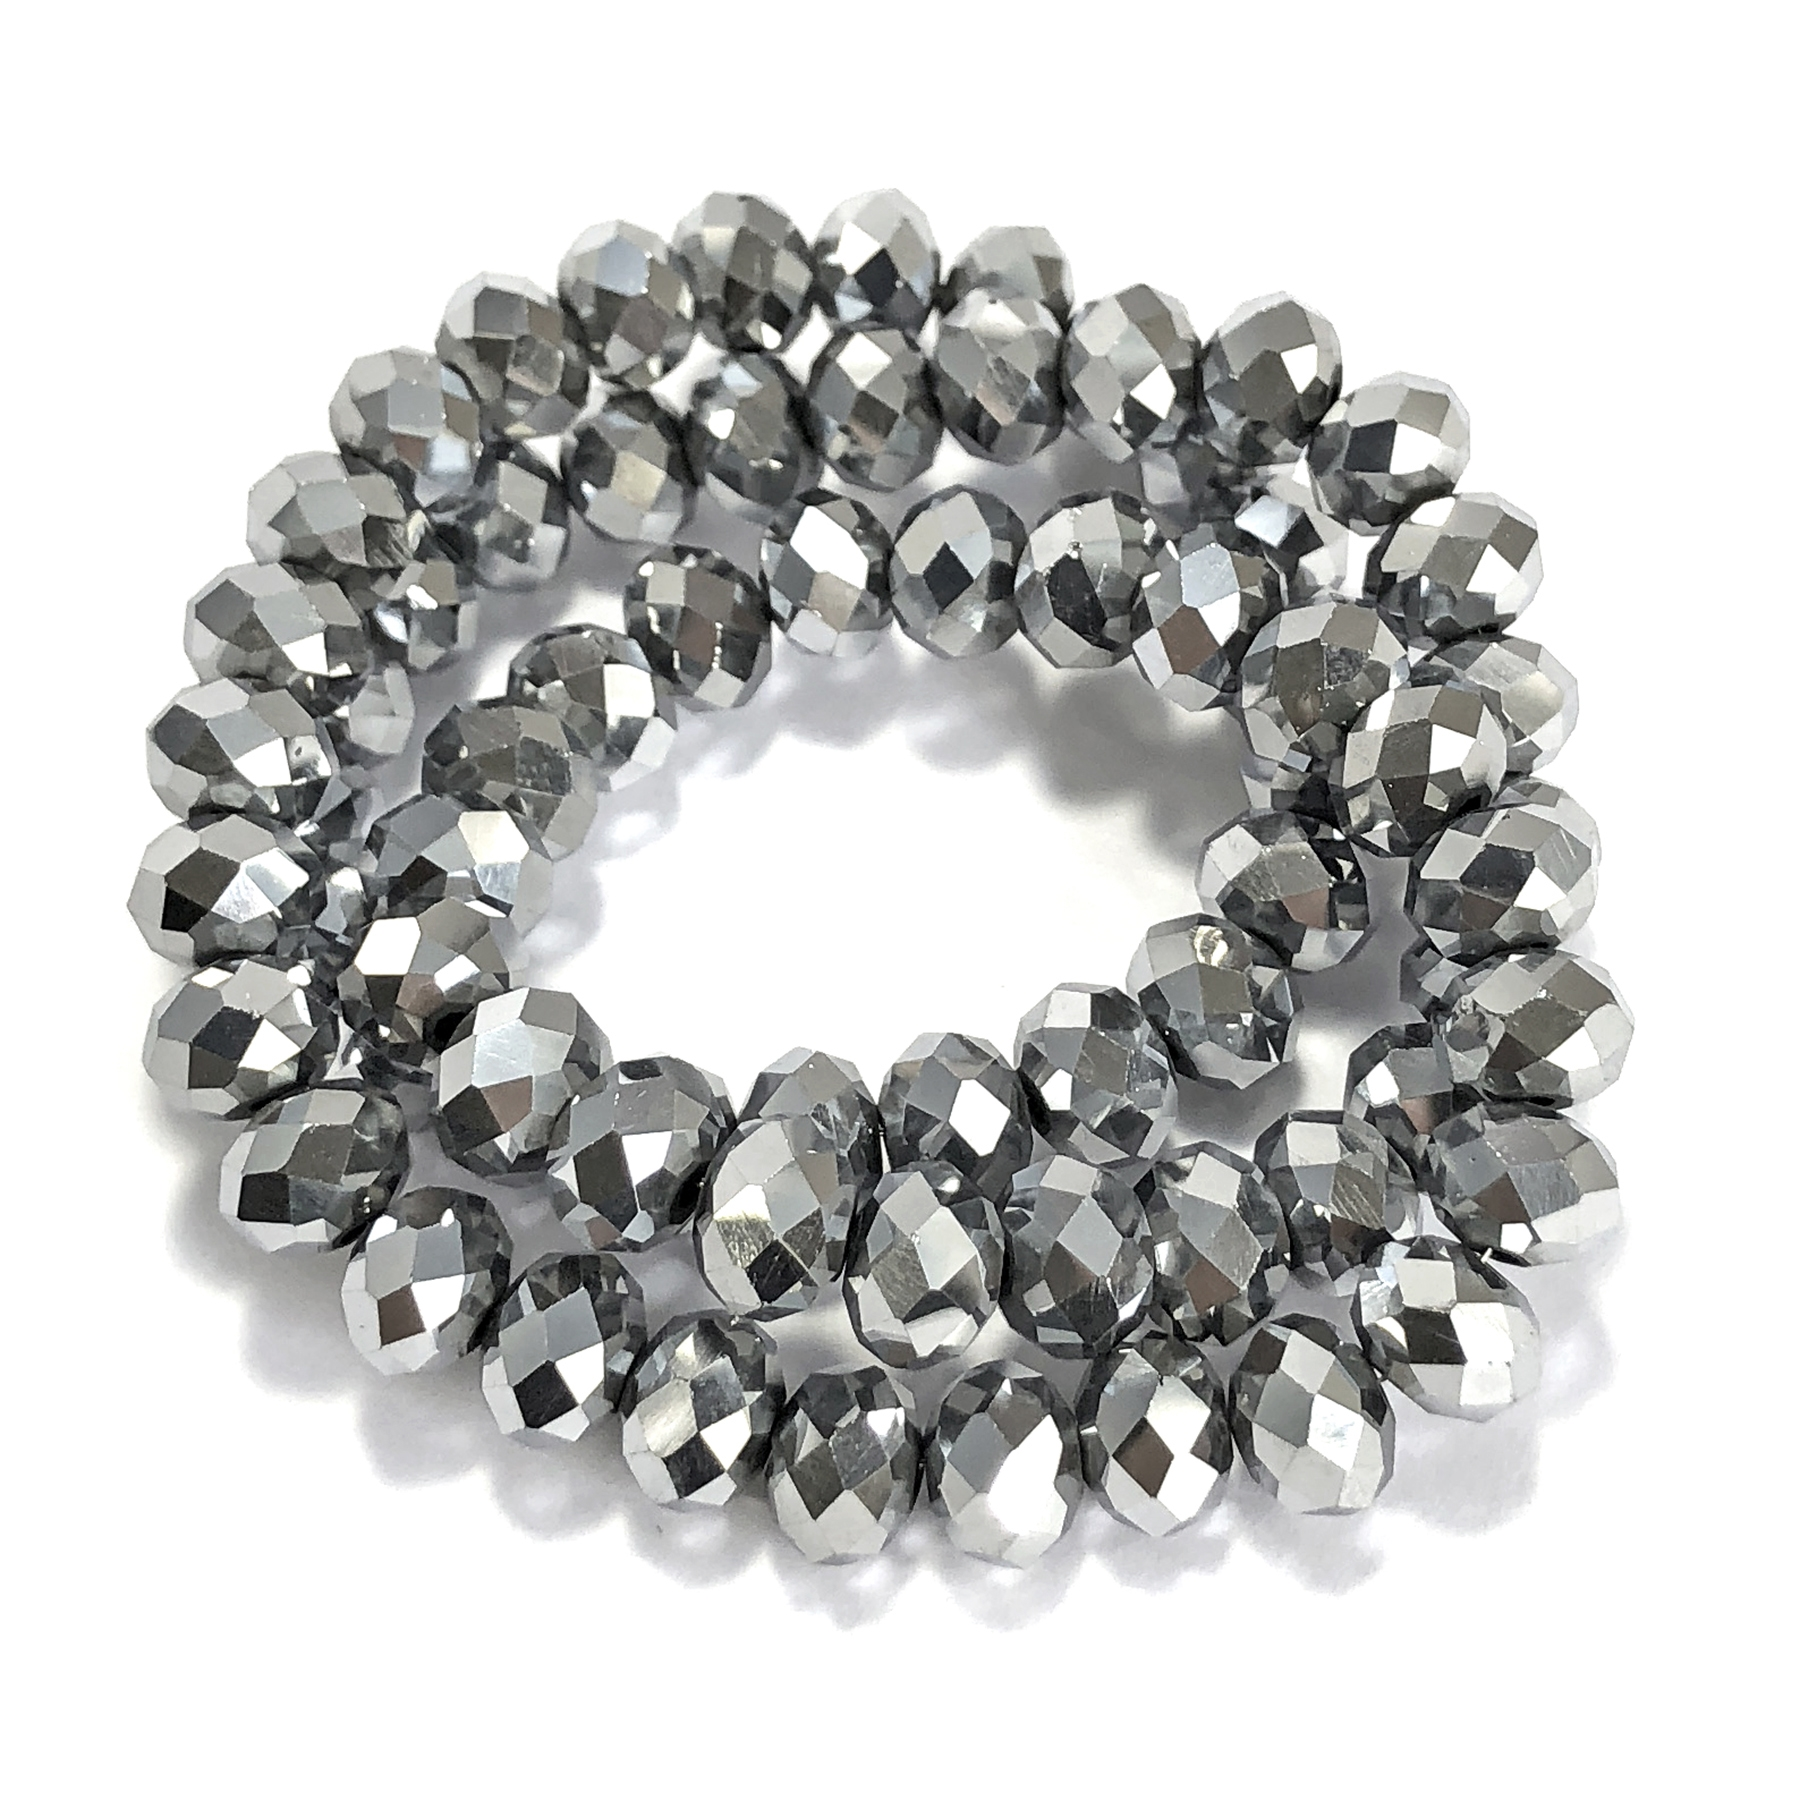 metallic silver rondelle beads, silver beads, rondelle beads, silver, faceted, glass beads, crystal glass, abacus beads, electroplate, metallic beads, 8x6mm, jewelry making beading supplies, jewelry supplies, vintage supplies, glass silver beads, 09514